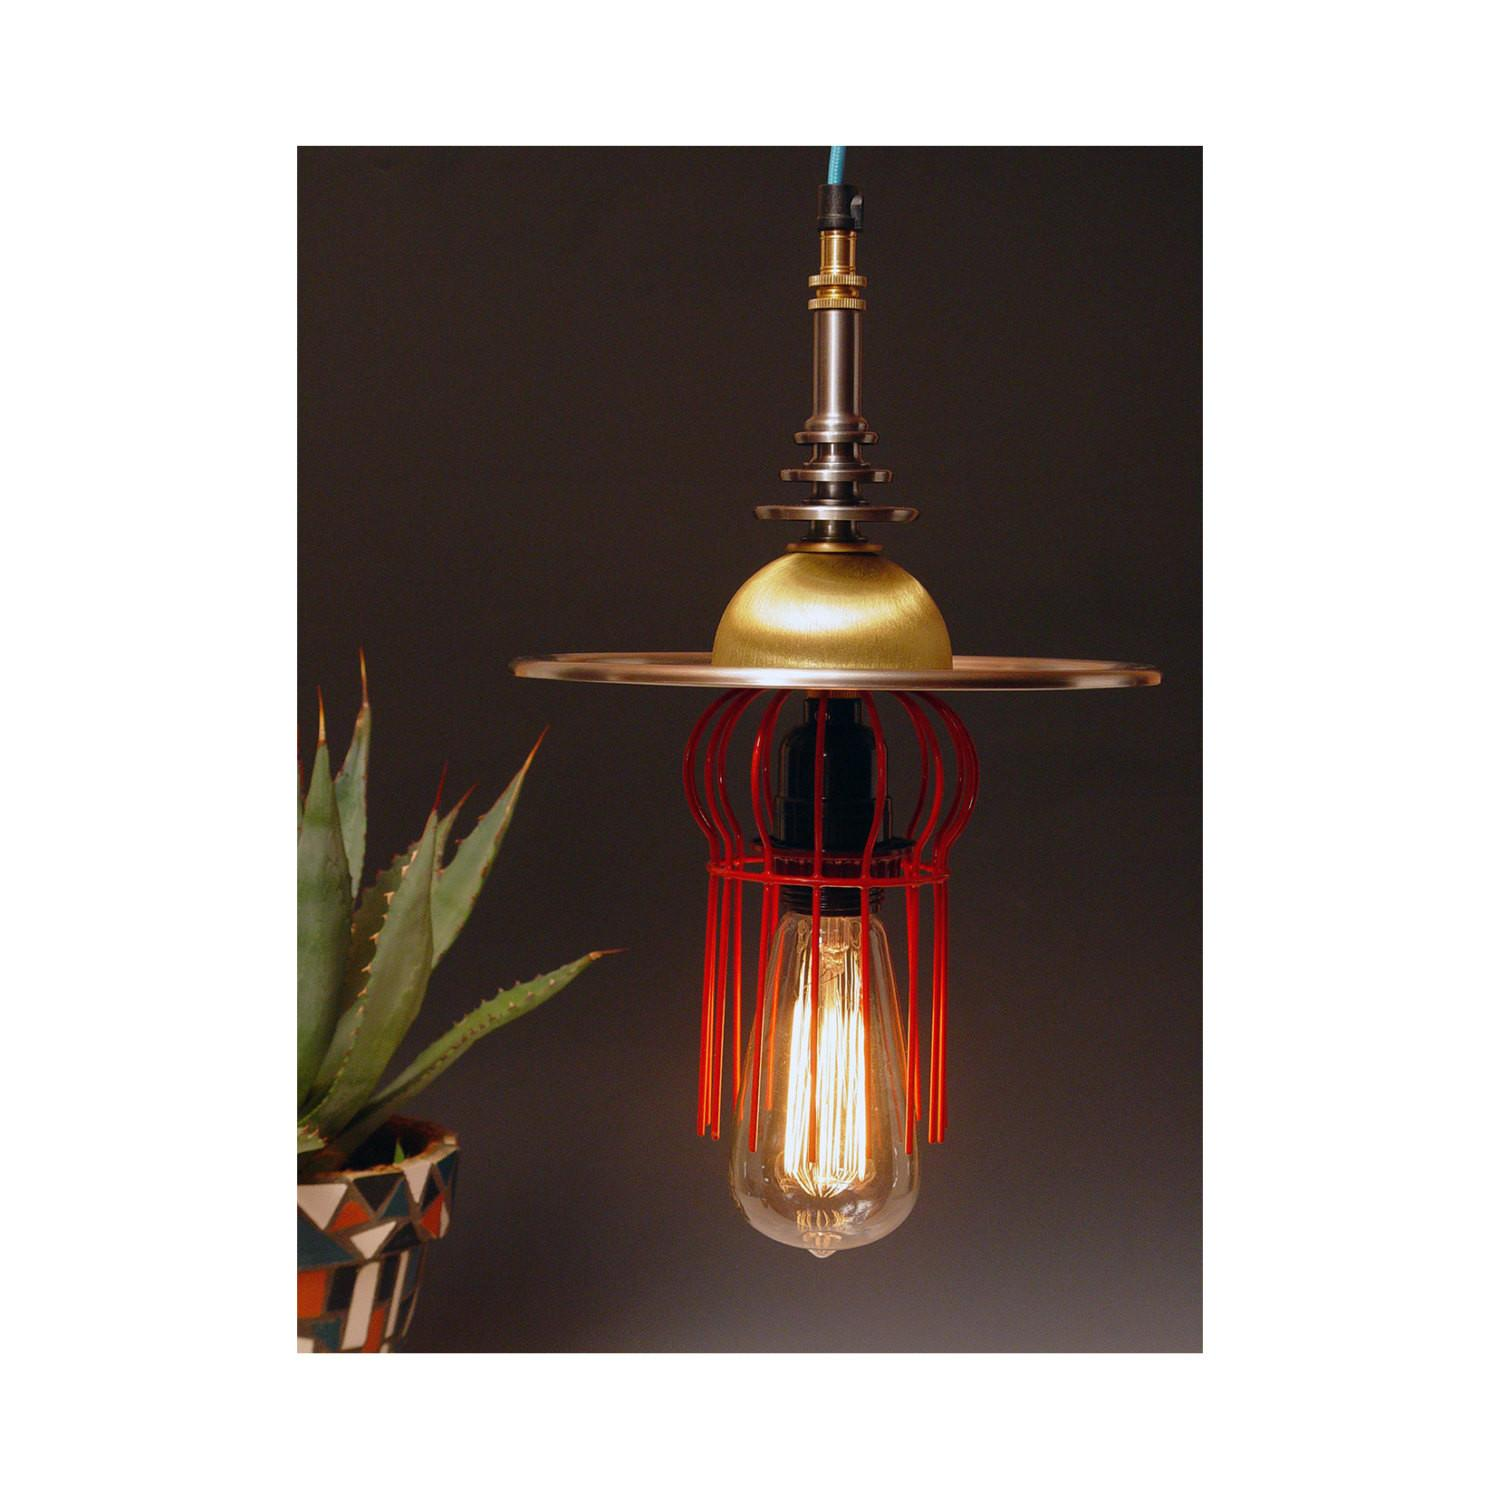 Hanging Lamp Art Deco Atomic Retro Found Objects 211